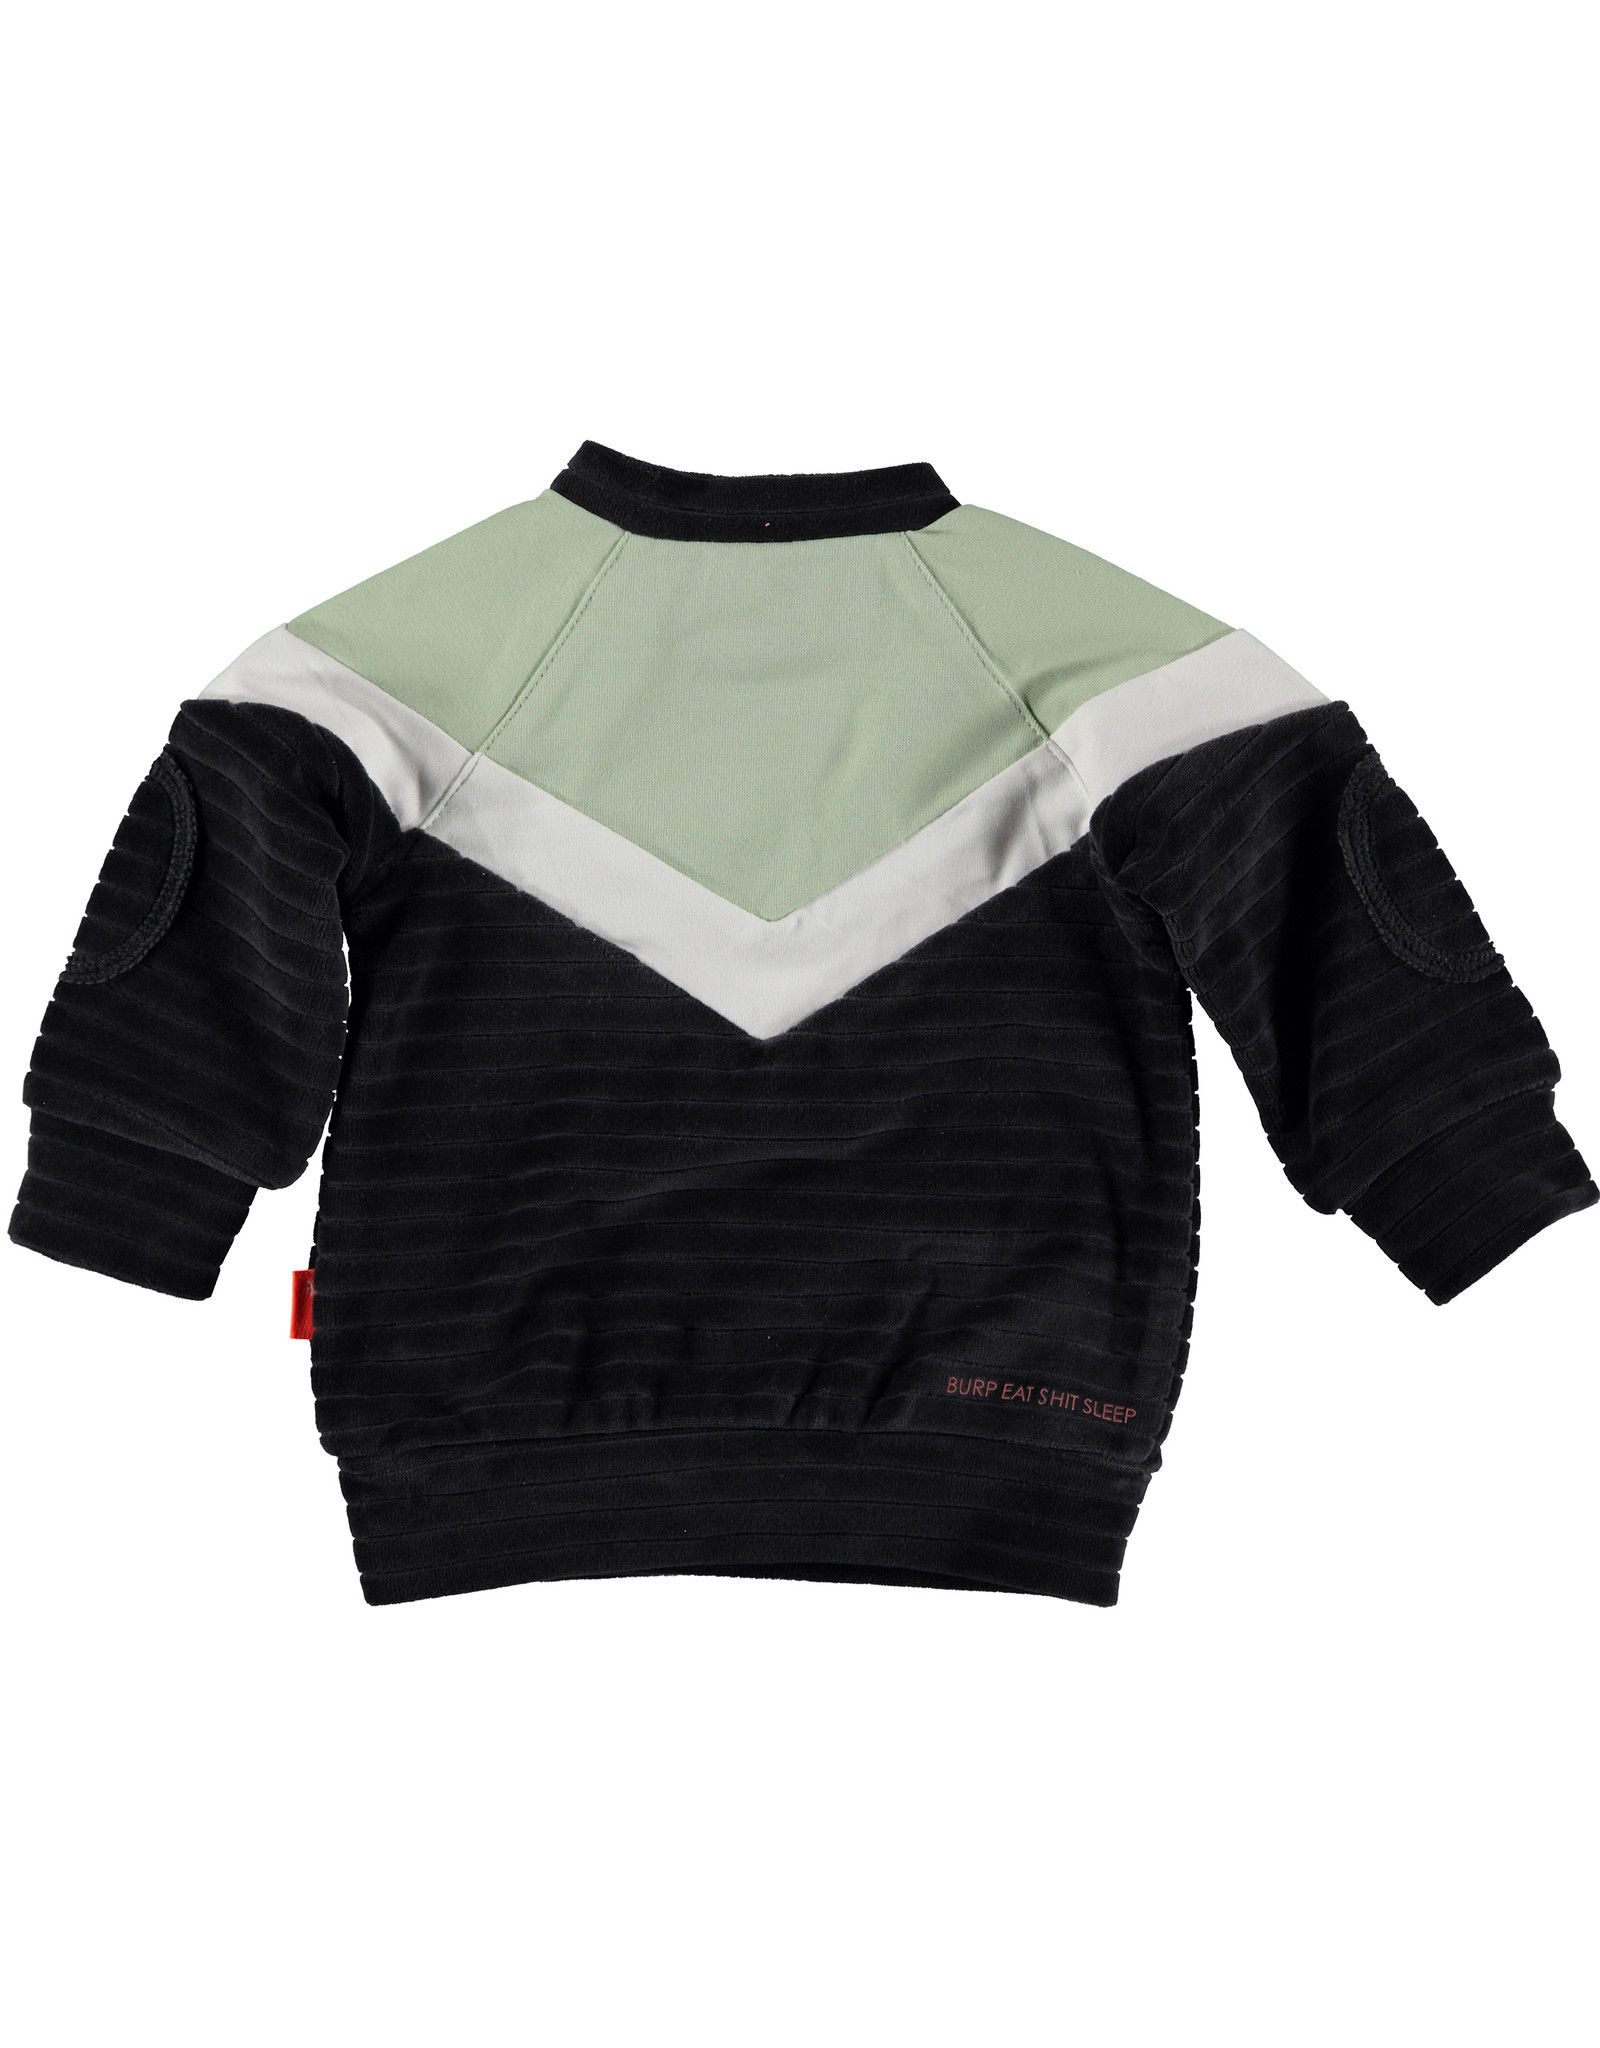 B.E.S.S. Sweater Velvet Colorblock, Anthracite